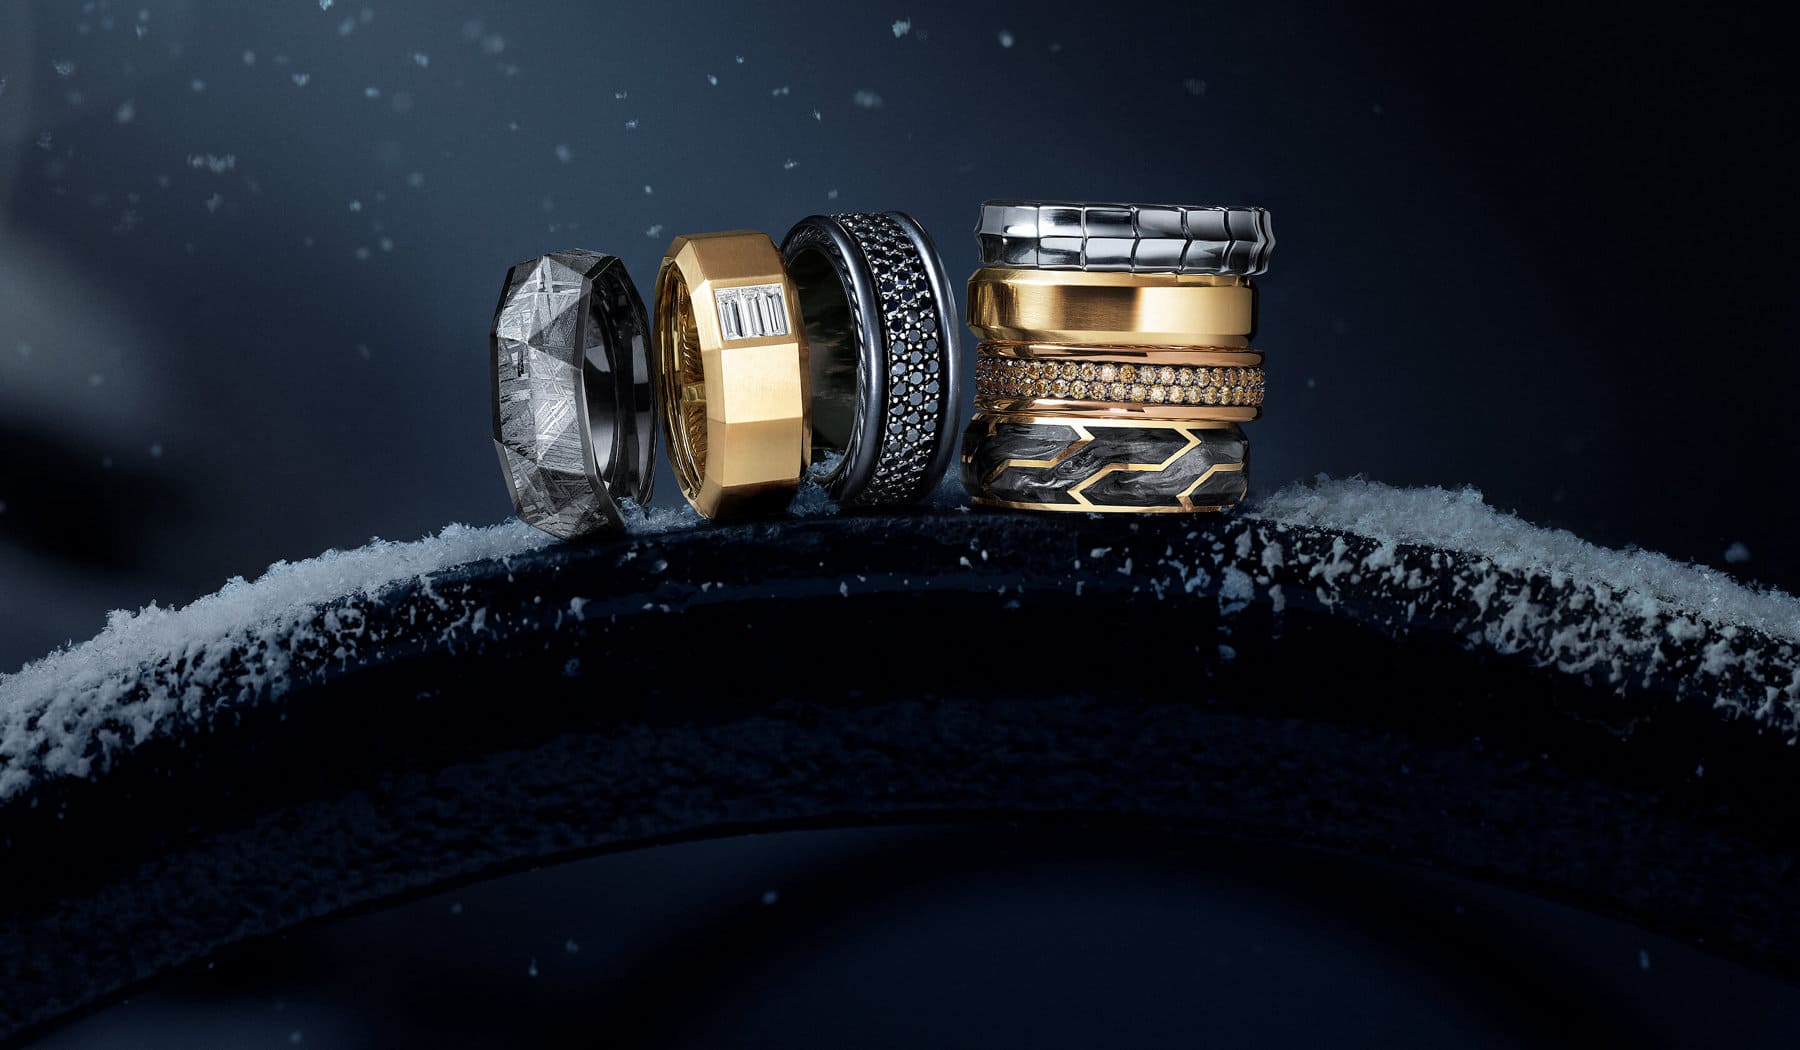 A color photo shows 7 David Yurman men's band rings in a ray of light on top of the snow-covered metal railing of a bench. Three rings in total from the Faceted and Pavé collections are standing upright in a row next to four rings in total from the Armory, Beveled, Streamline and Forged Carbon collections, which are stacked vertically on top of one another. The Faceted rings are crafted from black titanium with faceted meteorite or from 18K yellow gold with baguette white diamonds. The Pavé ring is crafted from black titanium with black diamonds. The Armory ring is crafted from 18K white gold. The Beveled ring is crafted from 18K yellow gold. The Streamline ring is crafted from 18K rose gold with pavé cognac diamonds. The Forged Carbon ring is crafted from 18K yellow gold with forged carbon.